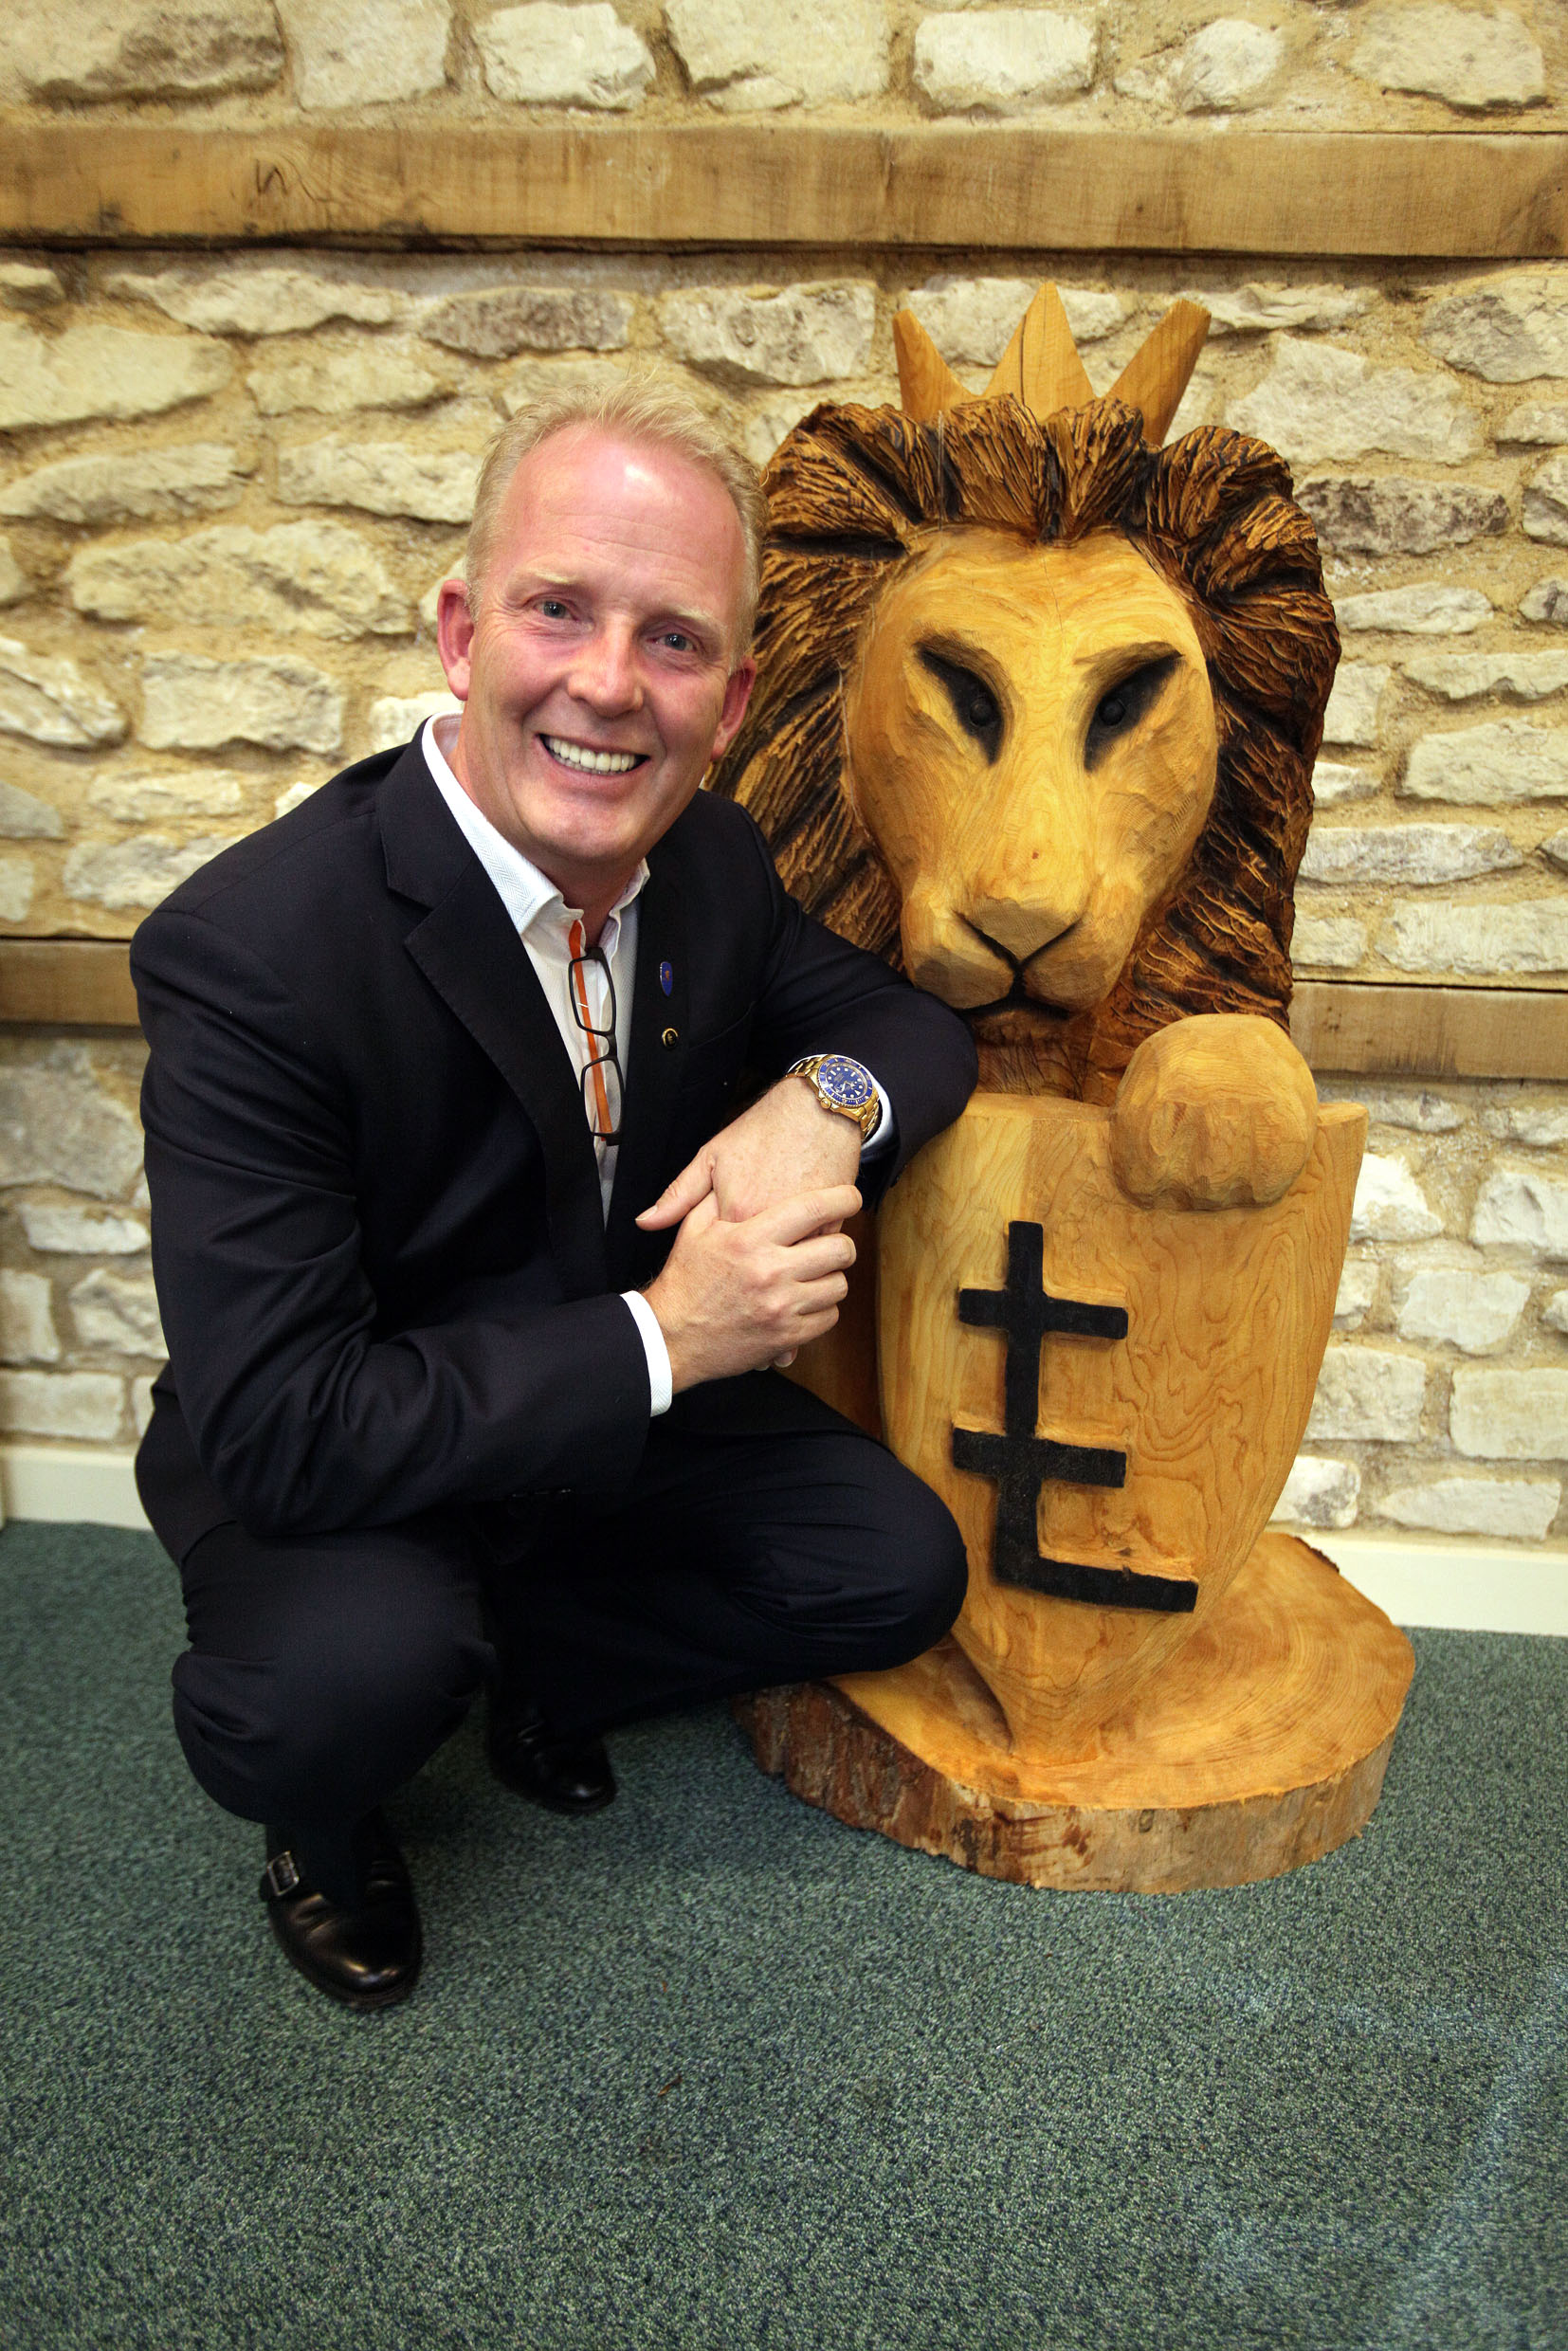 Roaring success: LEO co-founder Dan Andersson with a wooden lion carving used as the company's symbol